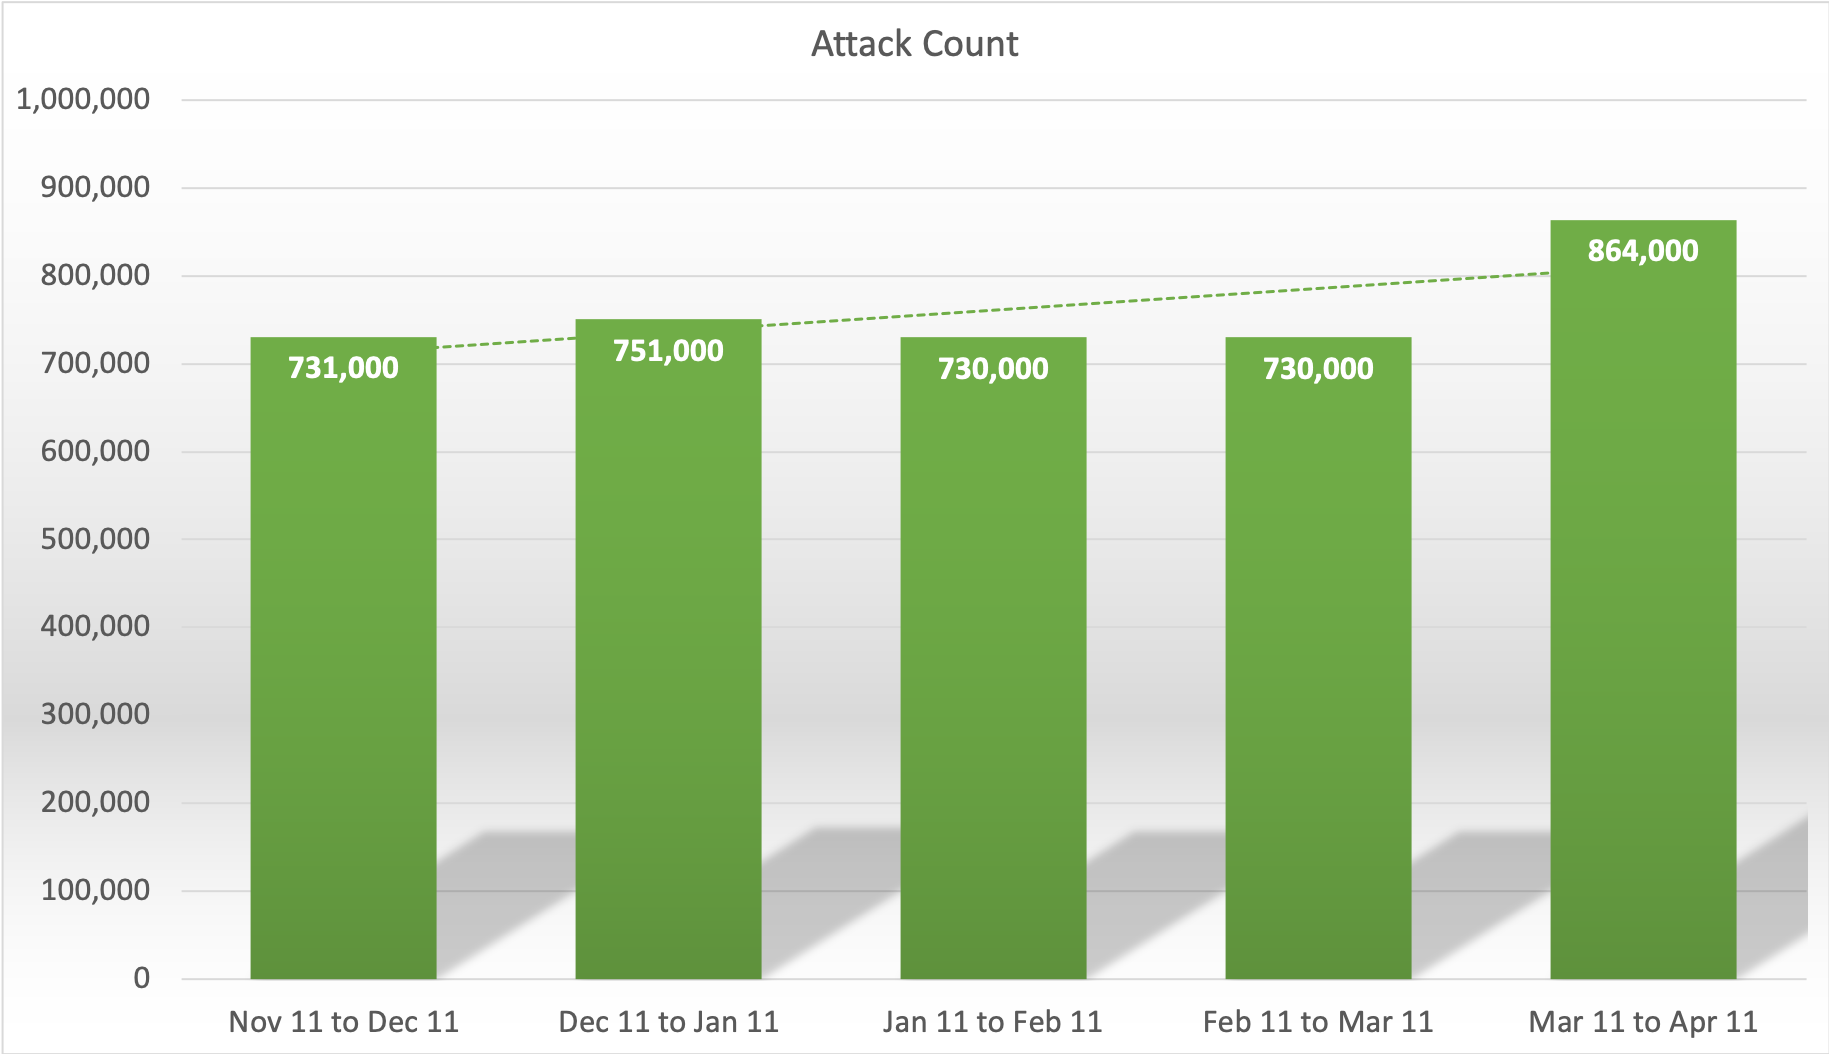 Attack Count